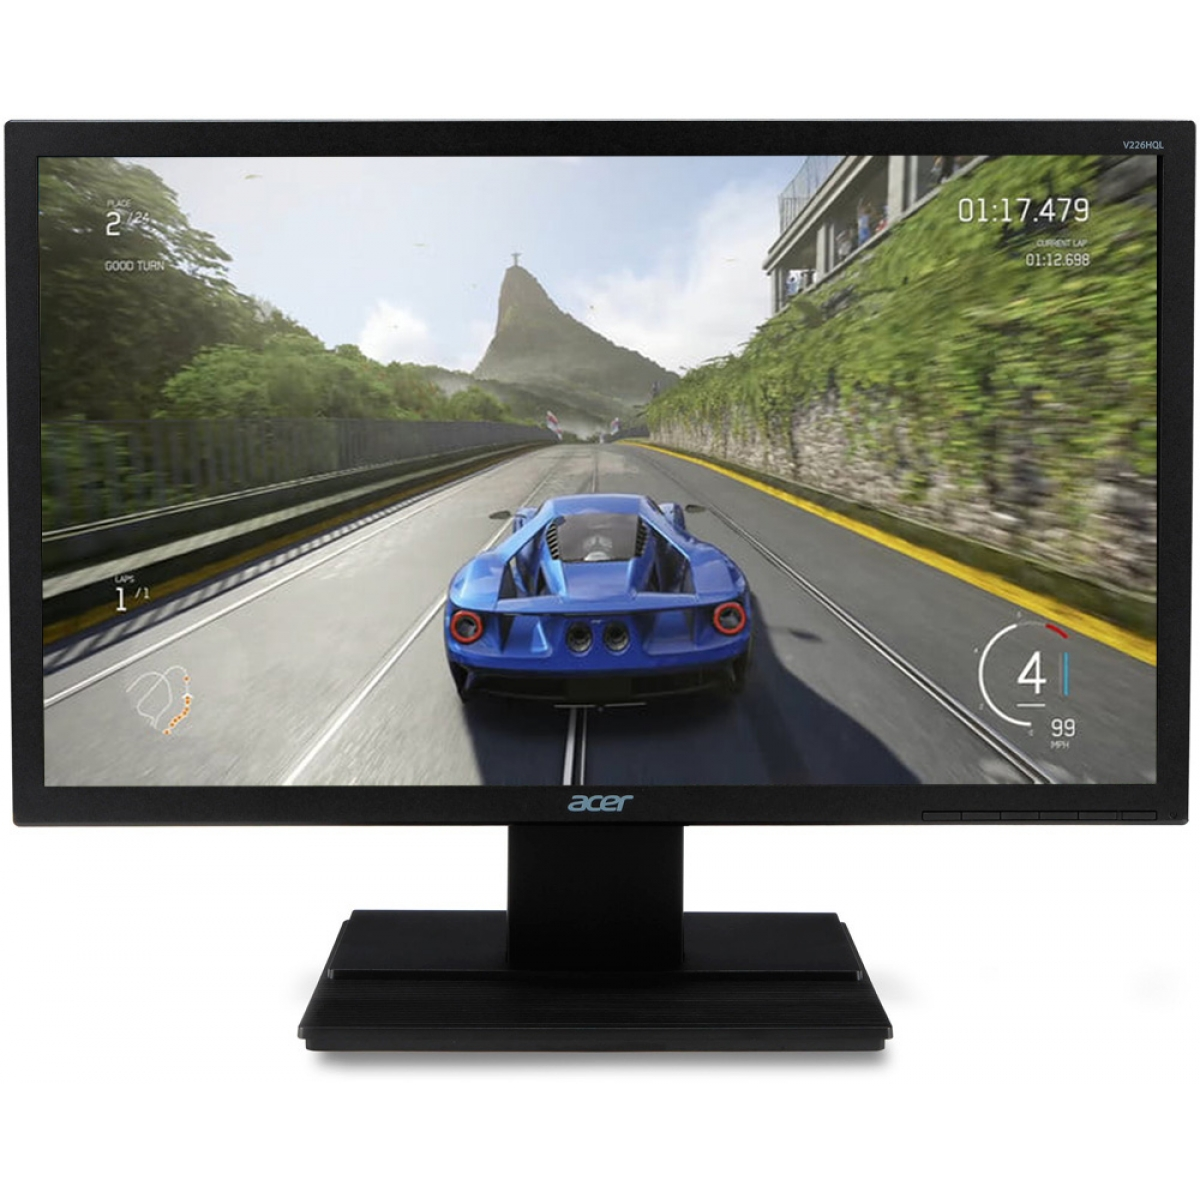 Monitor Gamer Acer 21.5 Pol, Full HD, 60hz, 5ms, V226HQL